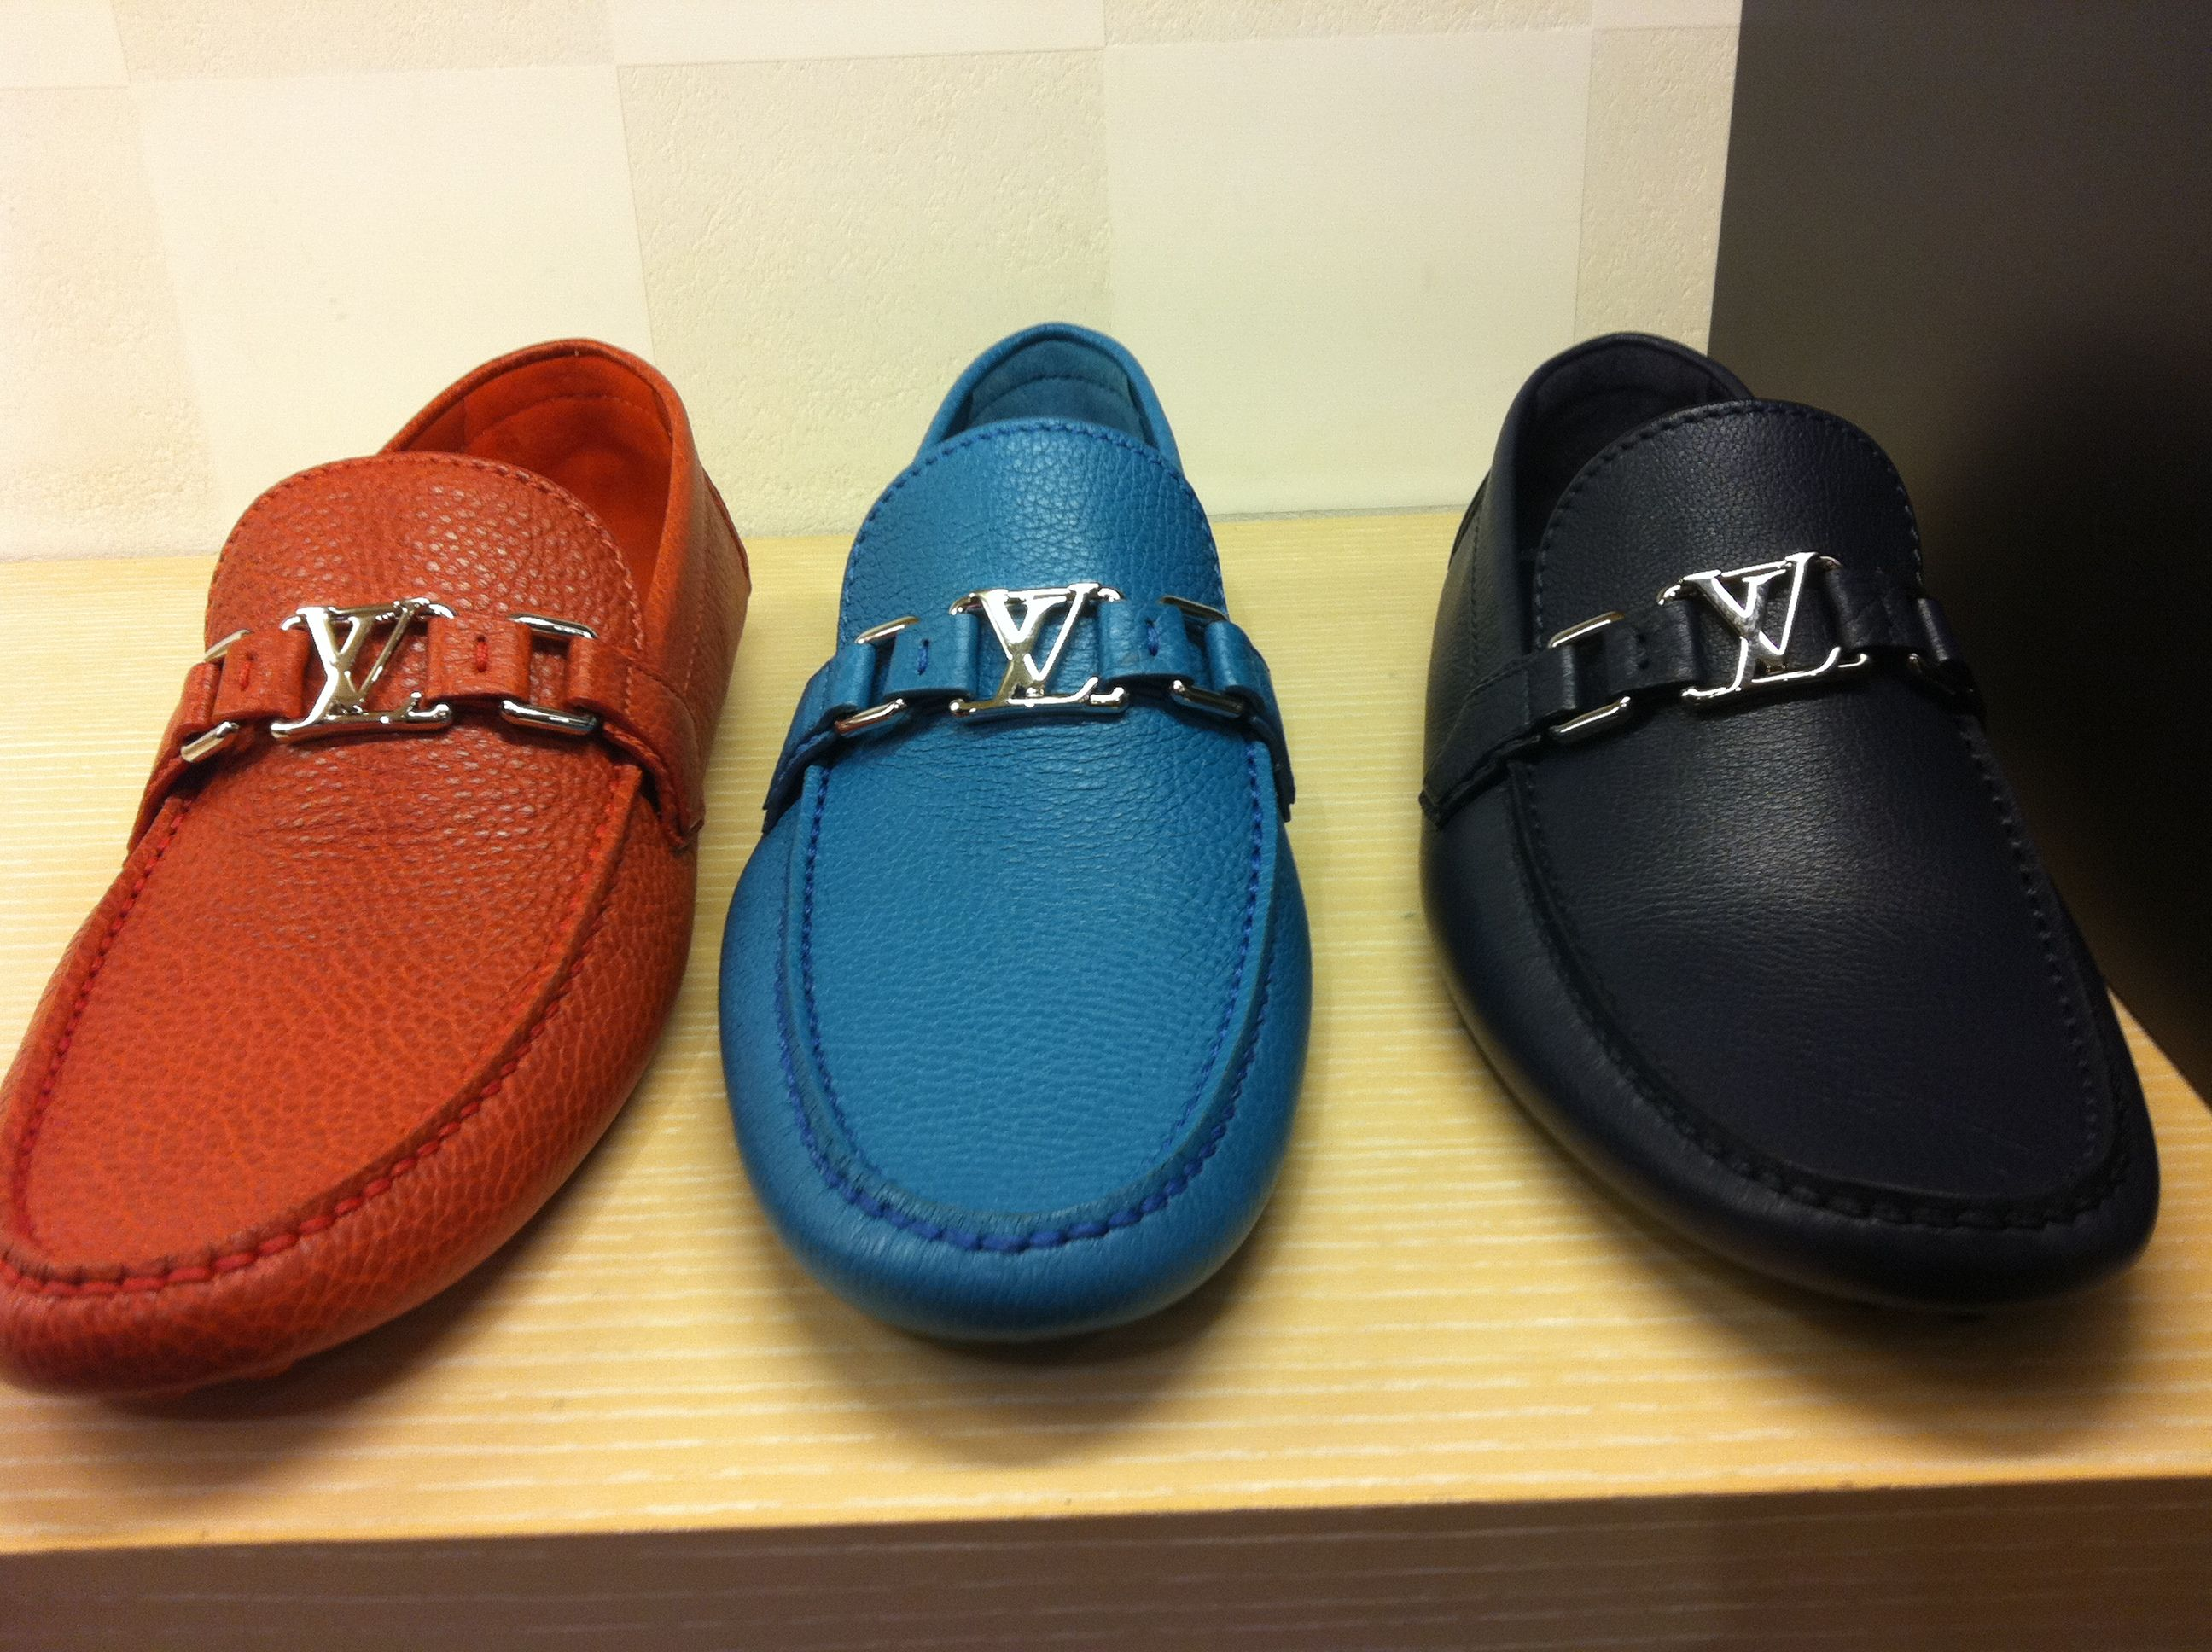 0877e2f3f LV driving shoe/loafers | salergirl <3 | Shoes, Loafer shoes, Lv shoes